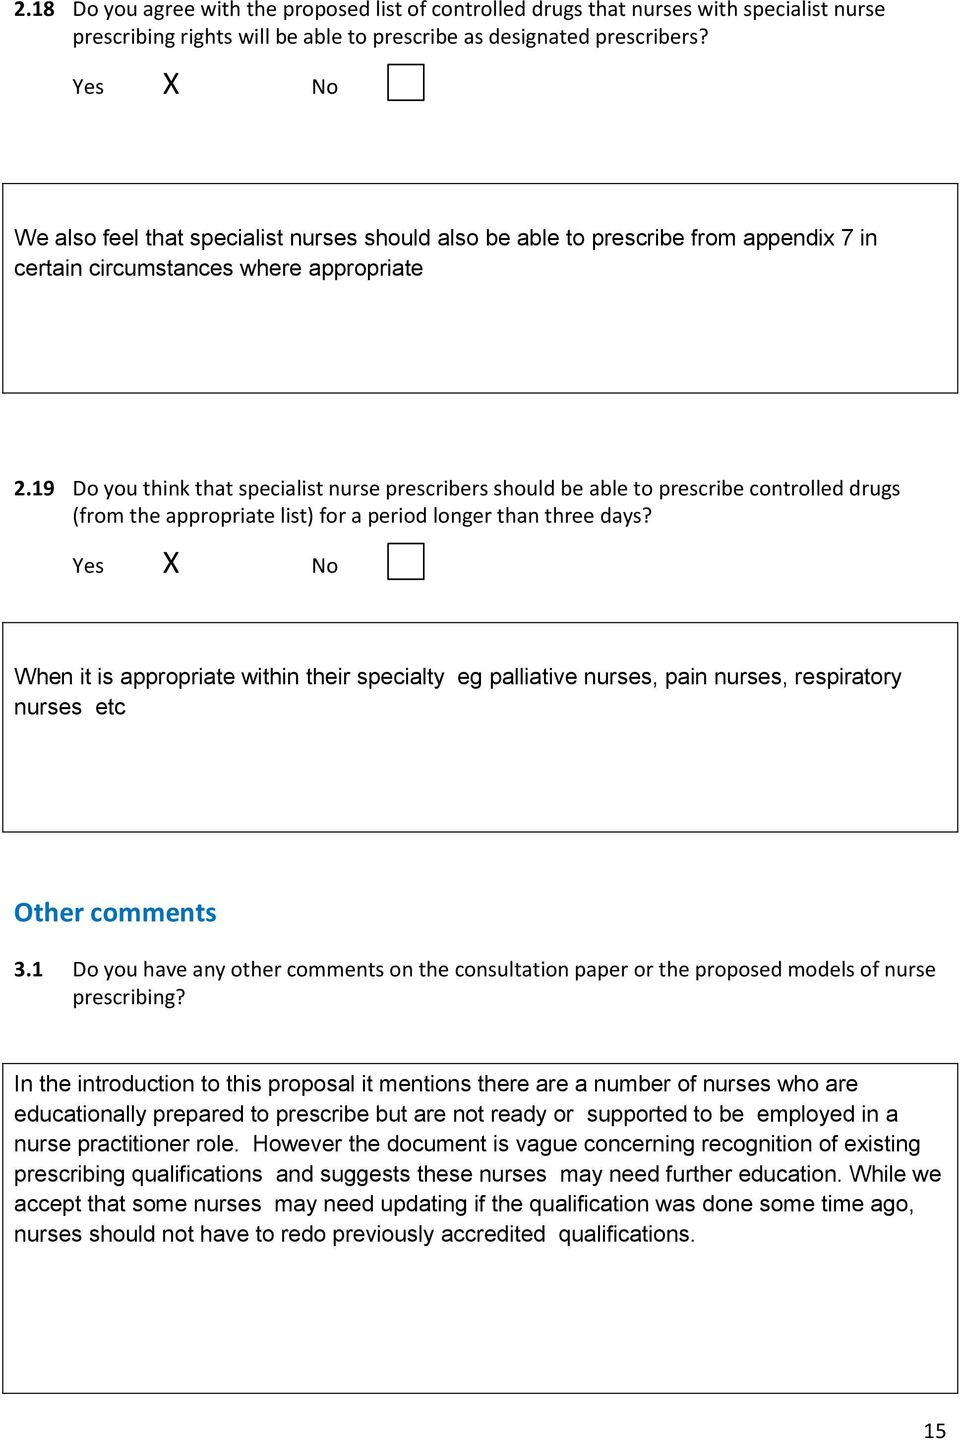 19 Do you think that specialist nurse prescribers should be able to prescribe controlled drugs (from the appropriate list) for a period longer than three days?